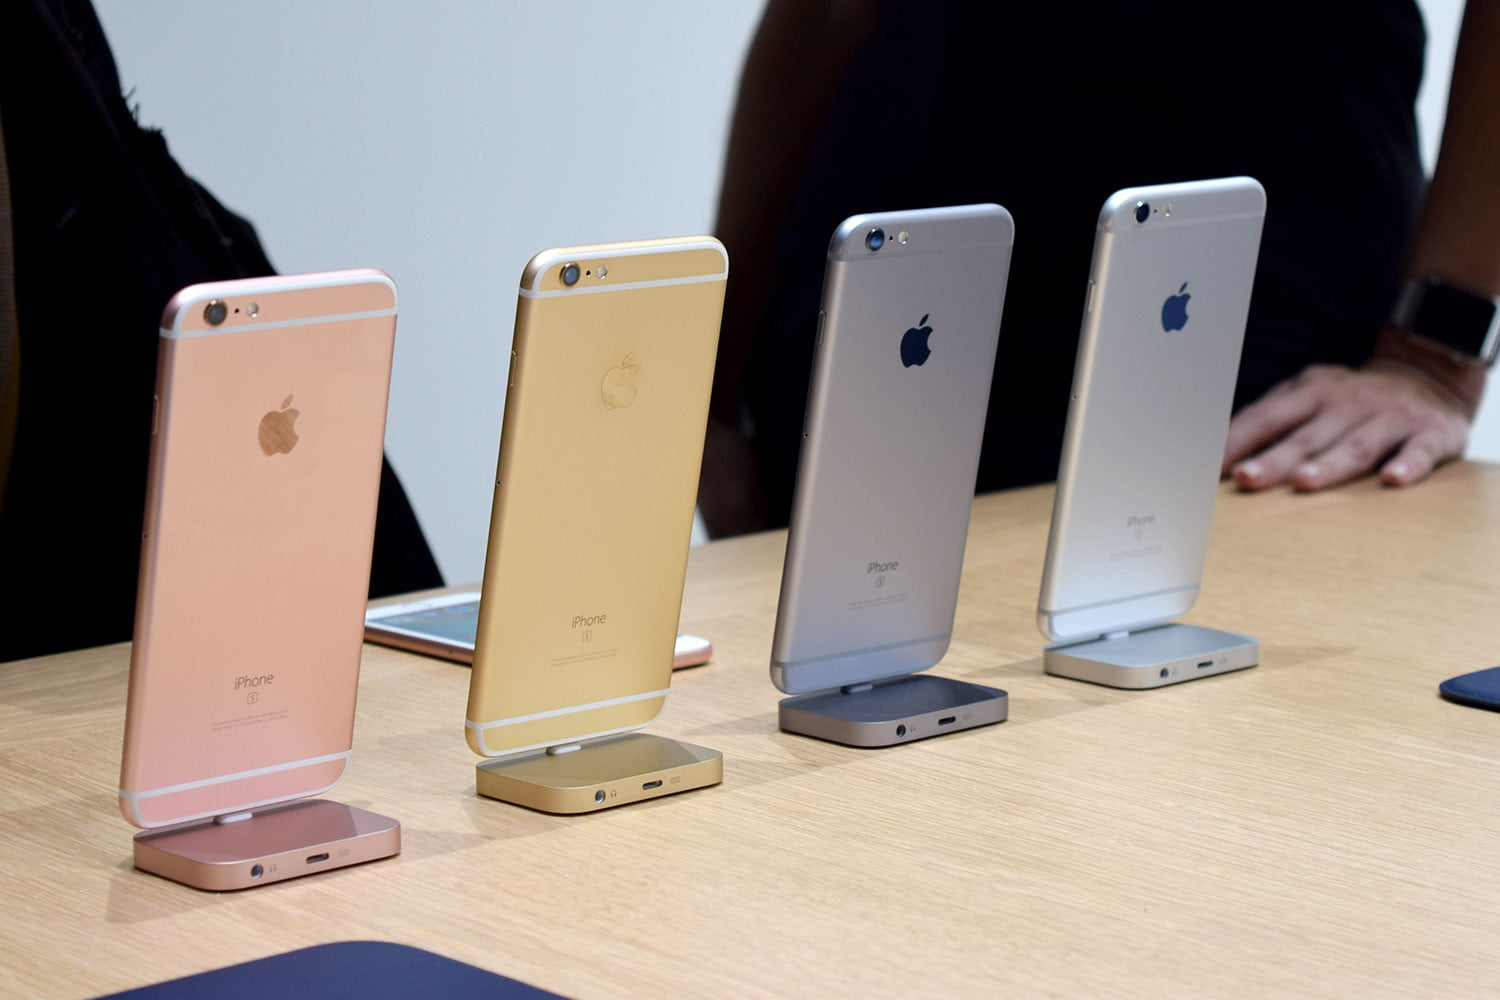 iPhone 6S vs Galaxy S6: Which is Better? | Digital Trends